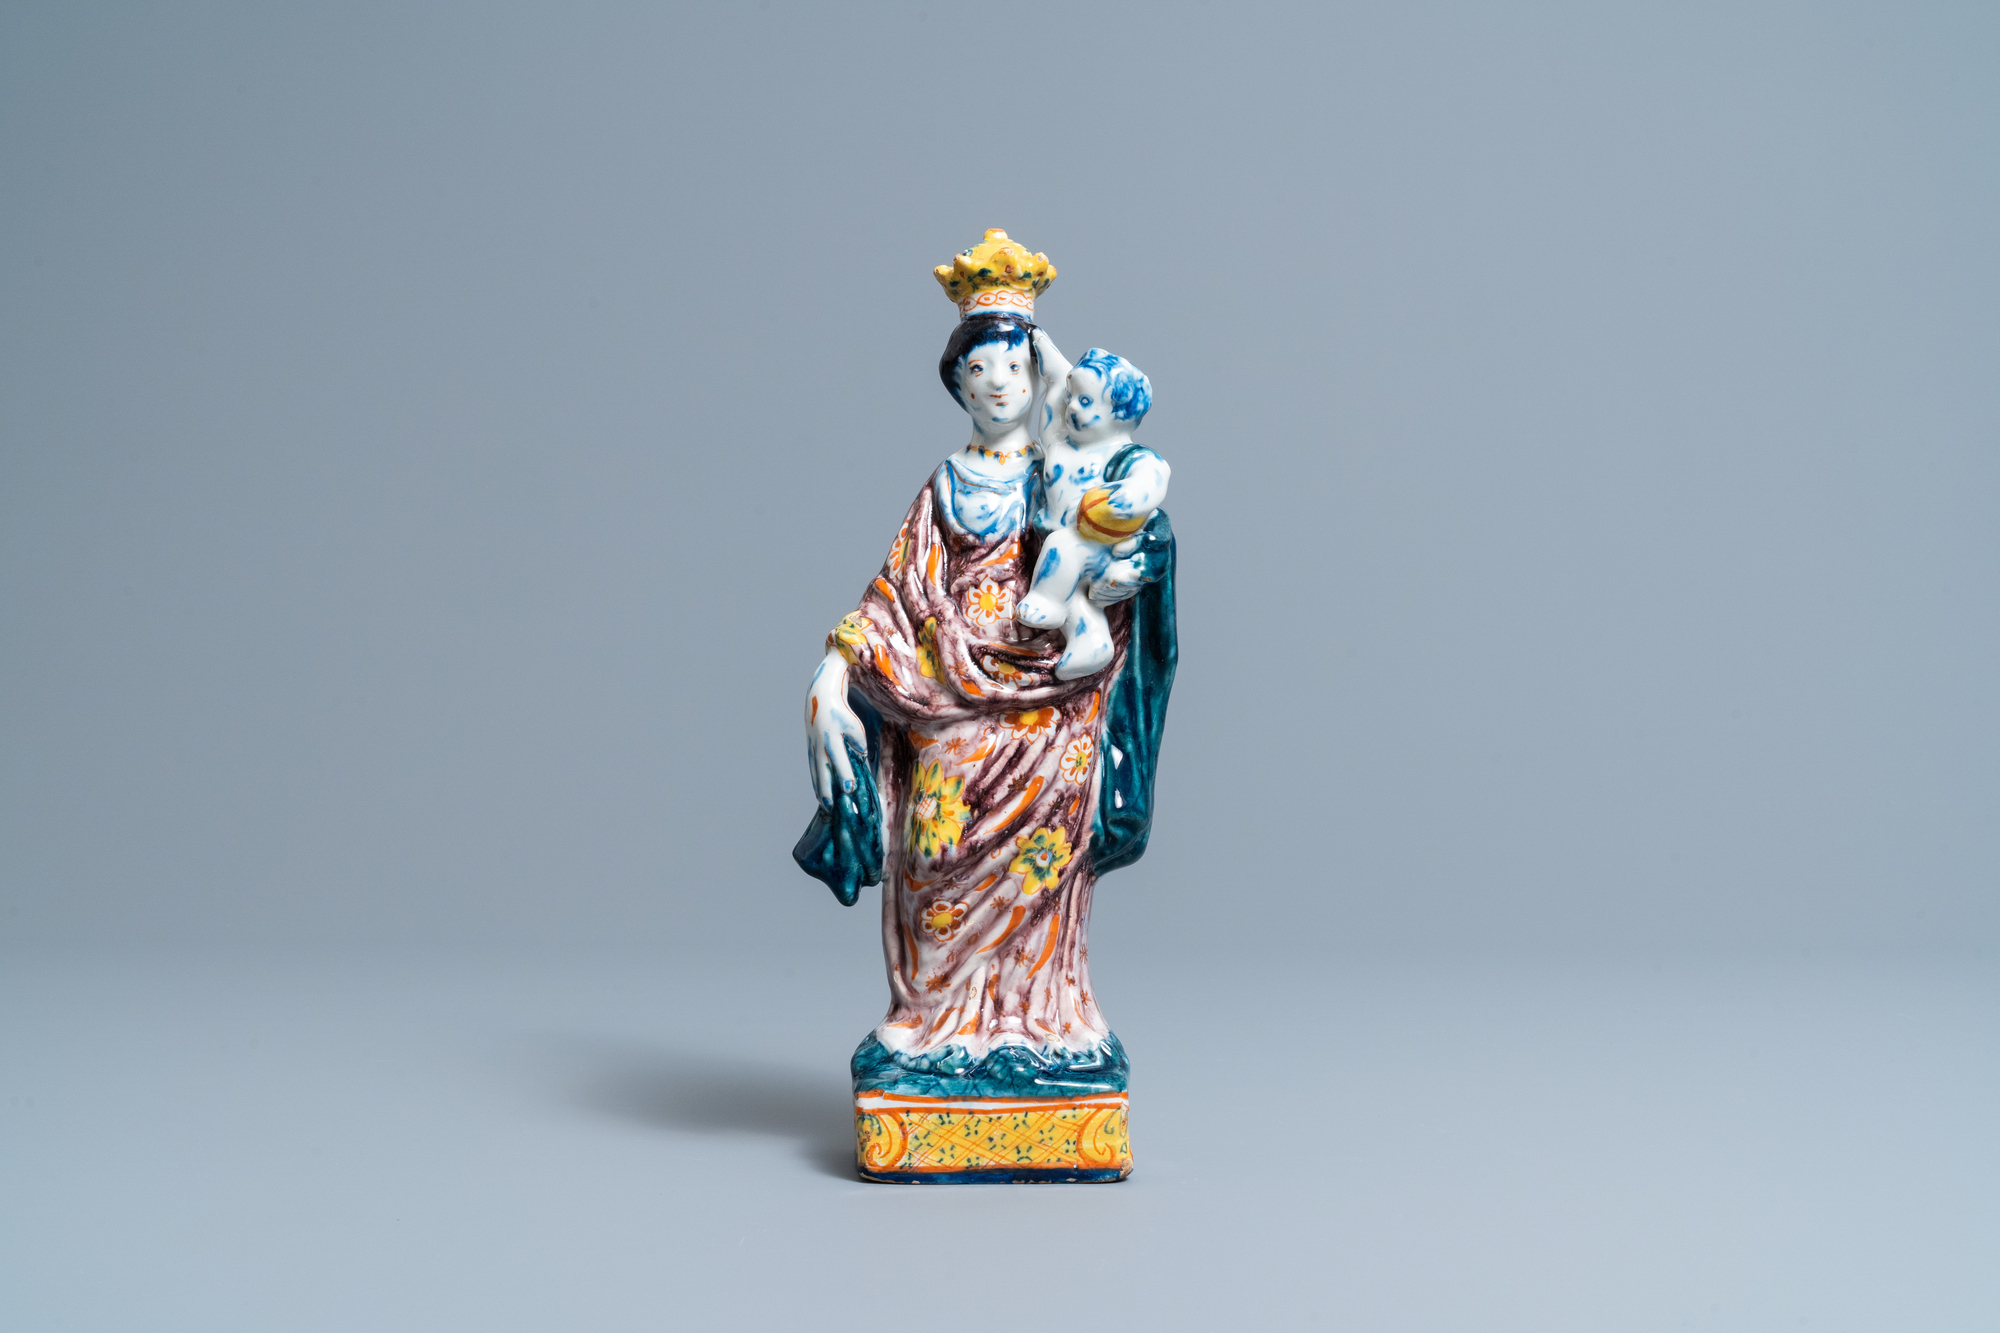 A polychrome Dutch Delft figure of the Madonna with child, 18th C. - Image 2 of 7